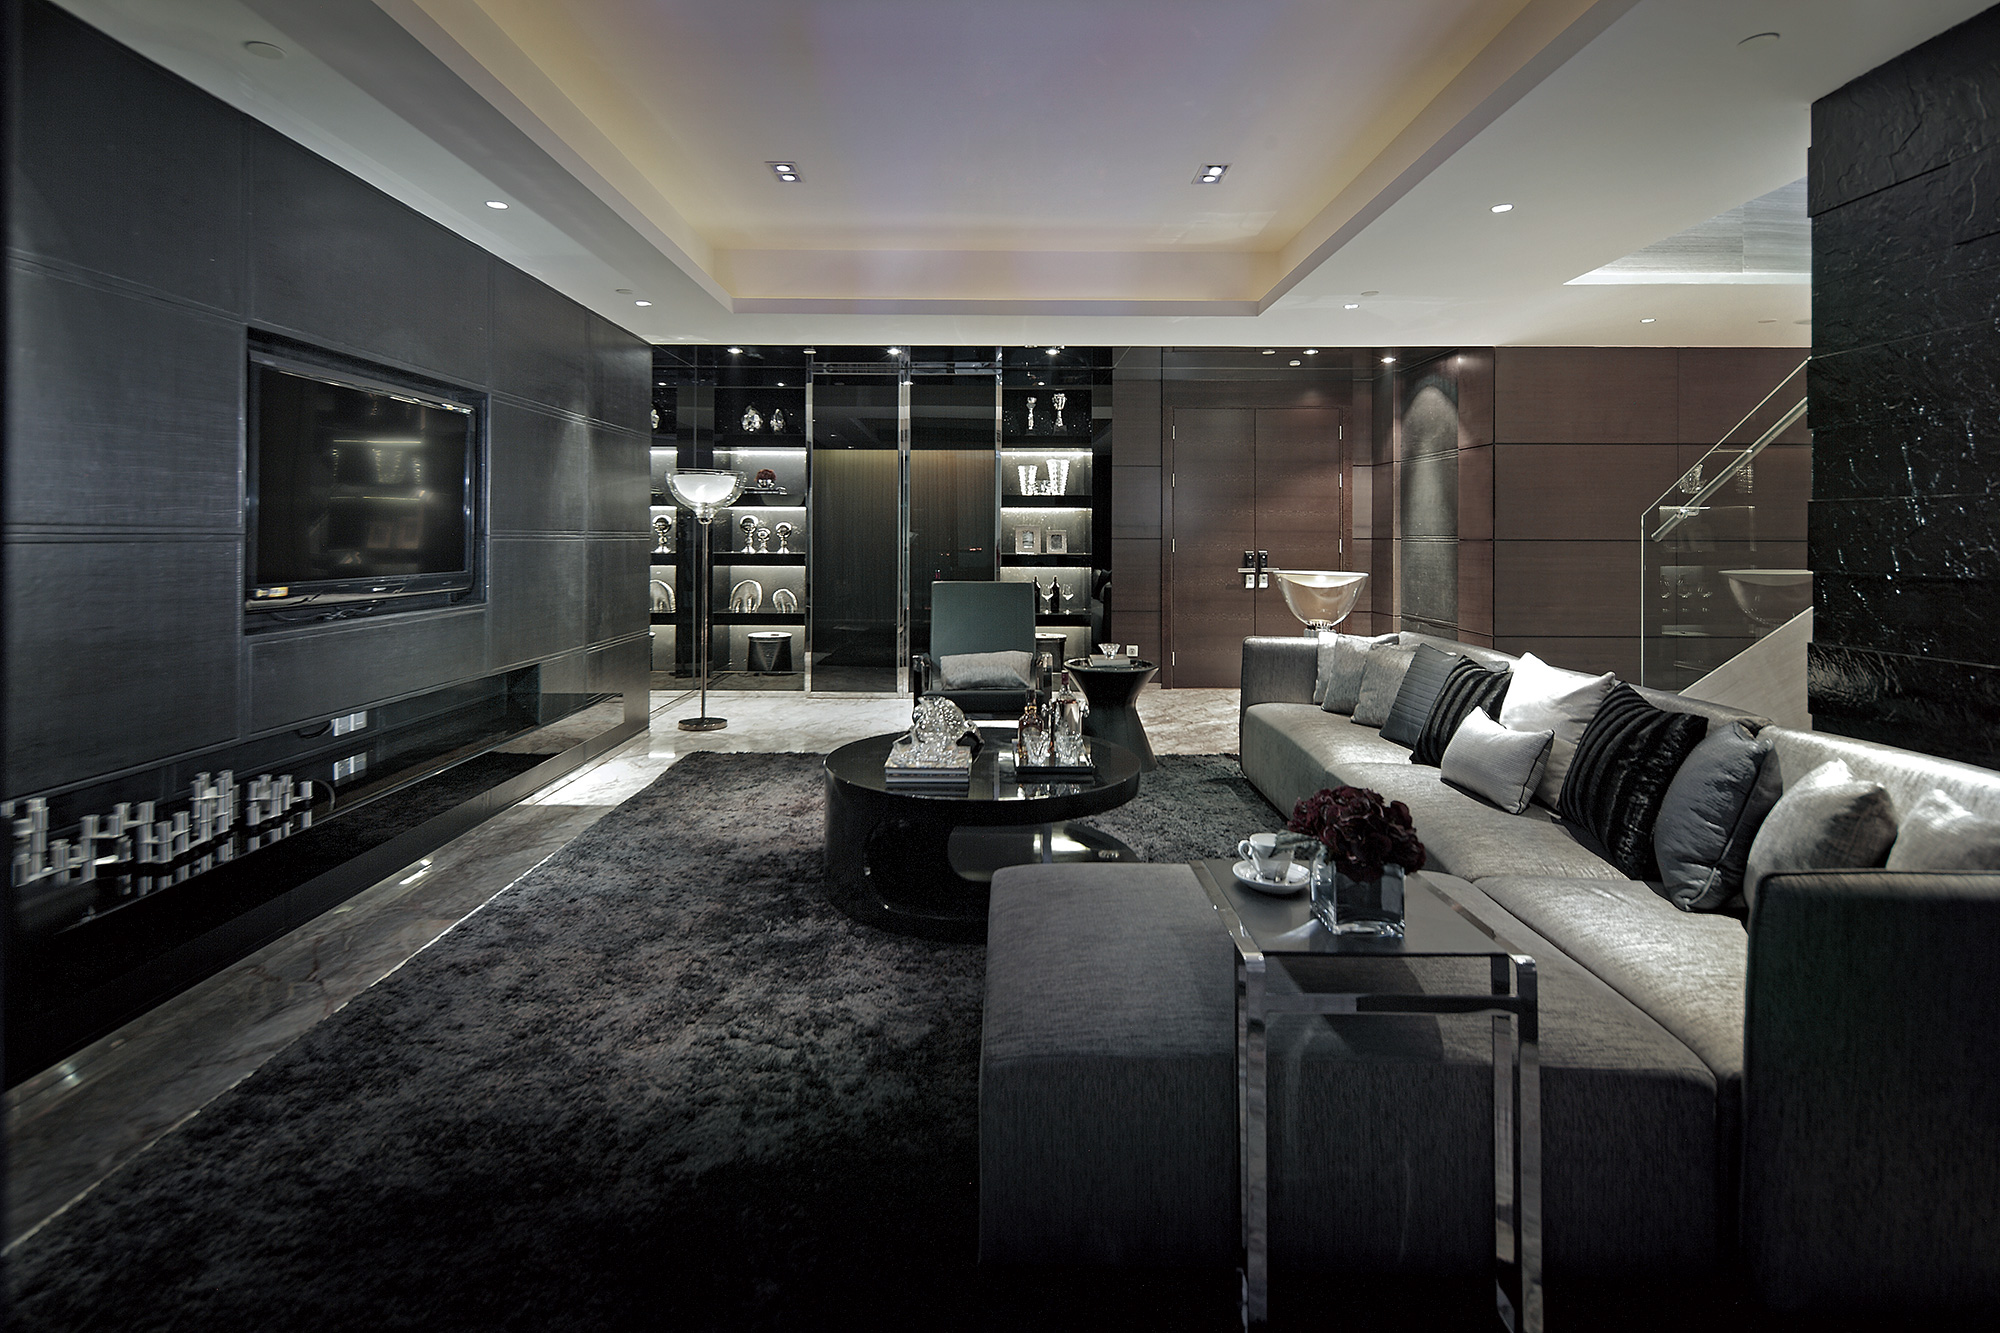 Synergistic modern spaces by steve leung for Lounge area ideas